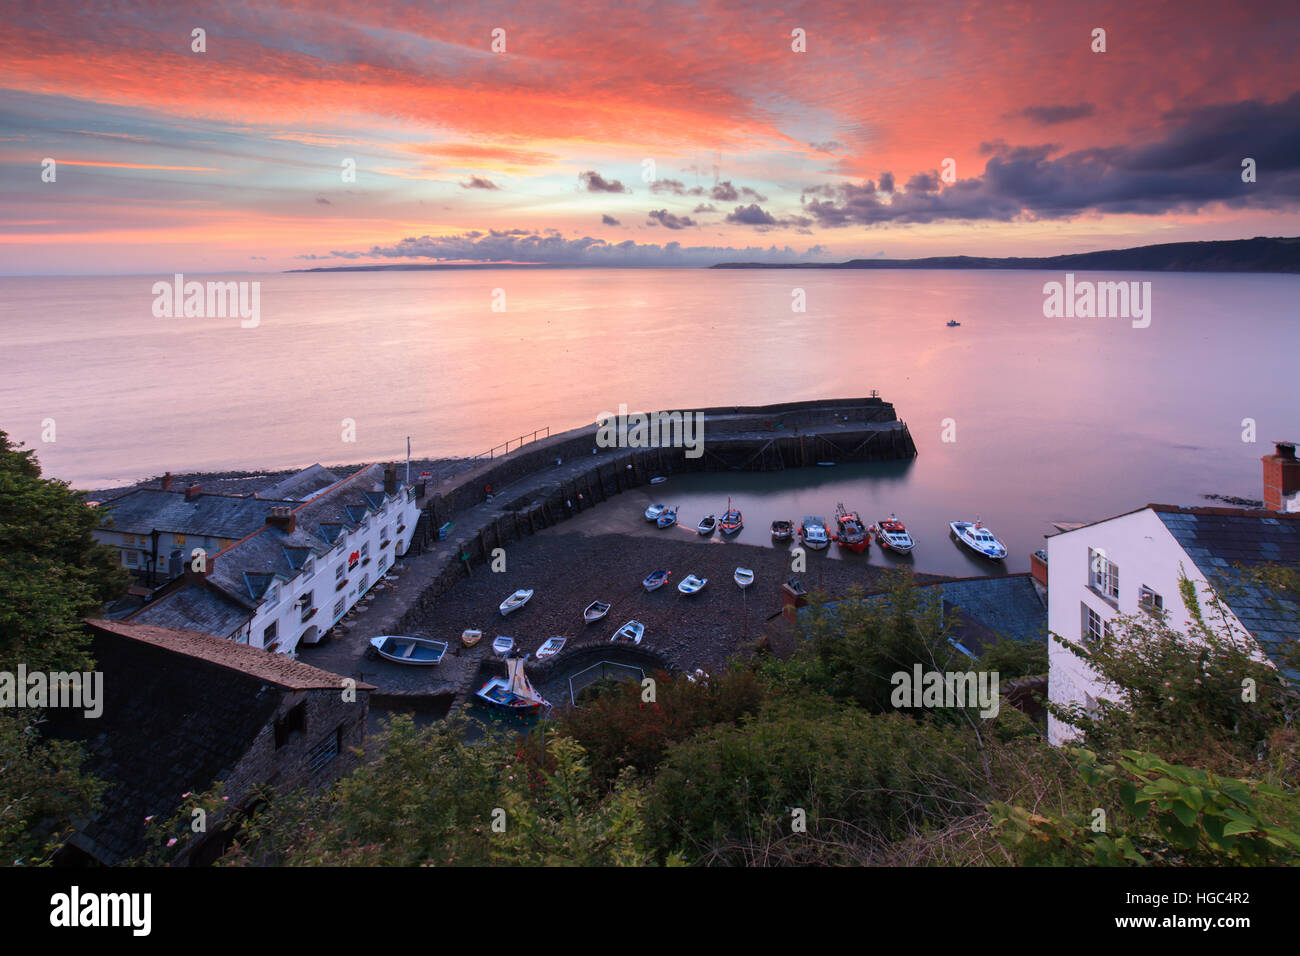 Clovelly Harbour in North Devon captured at sunrise. - Stock Image